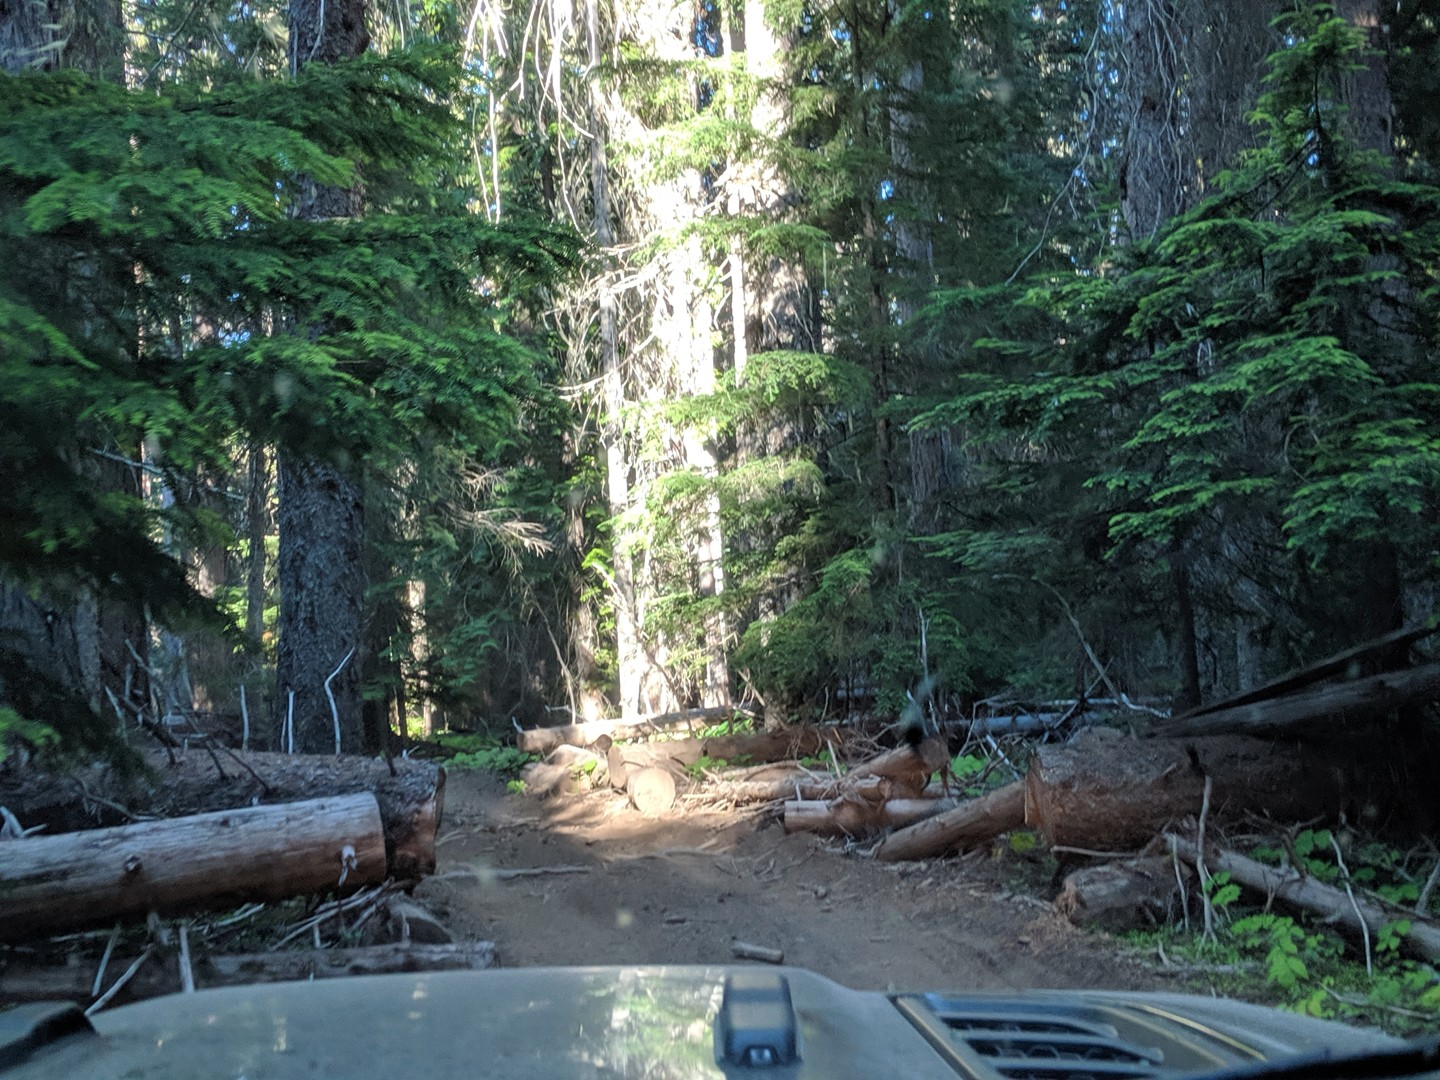 Trail Review: Naches Trail